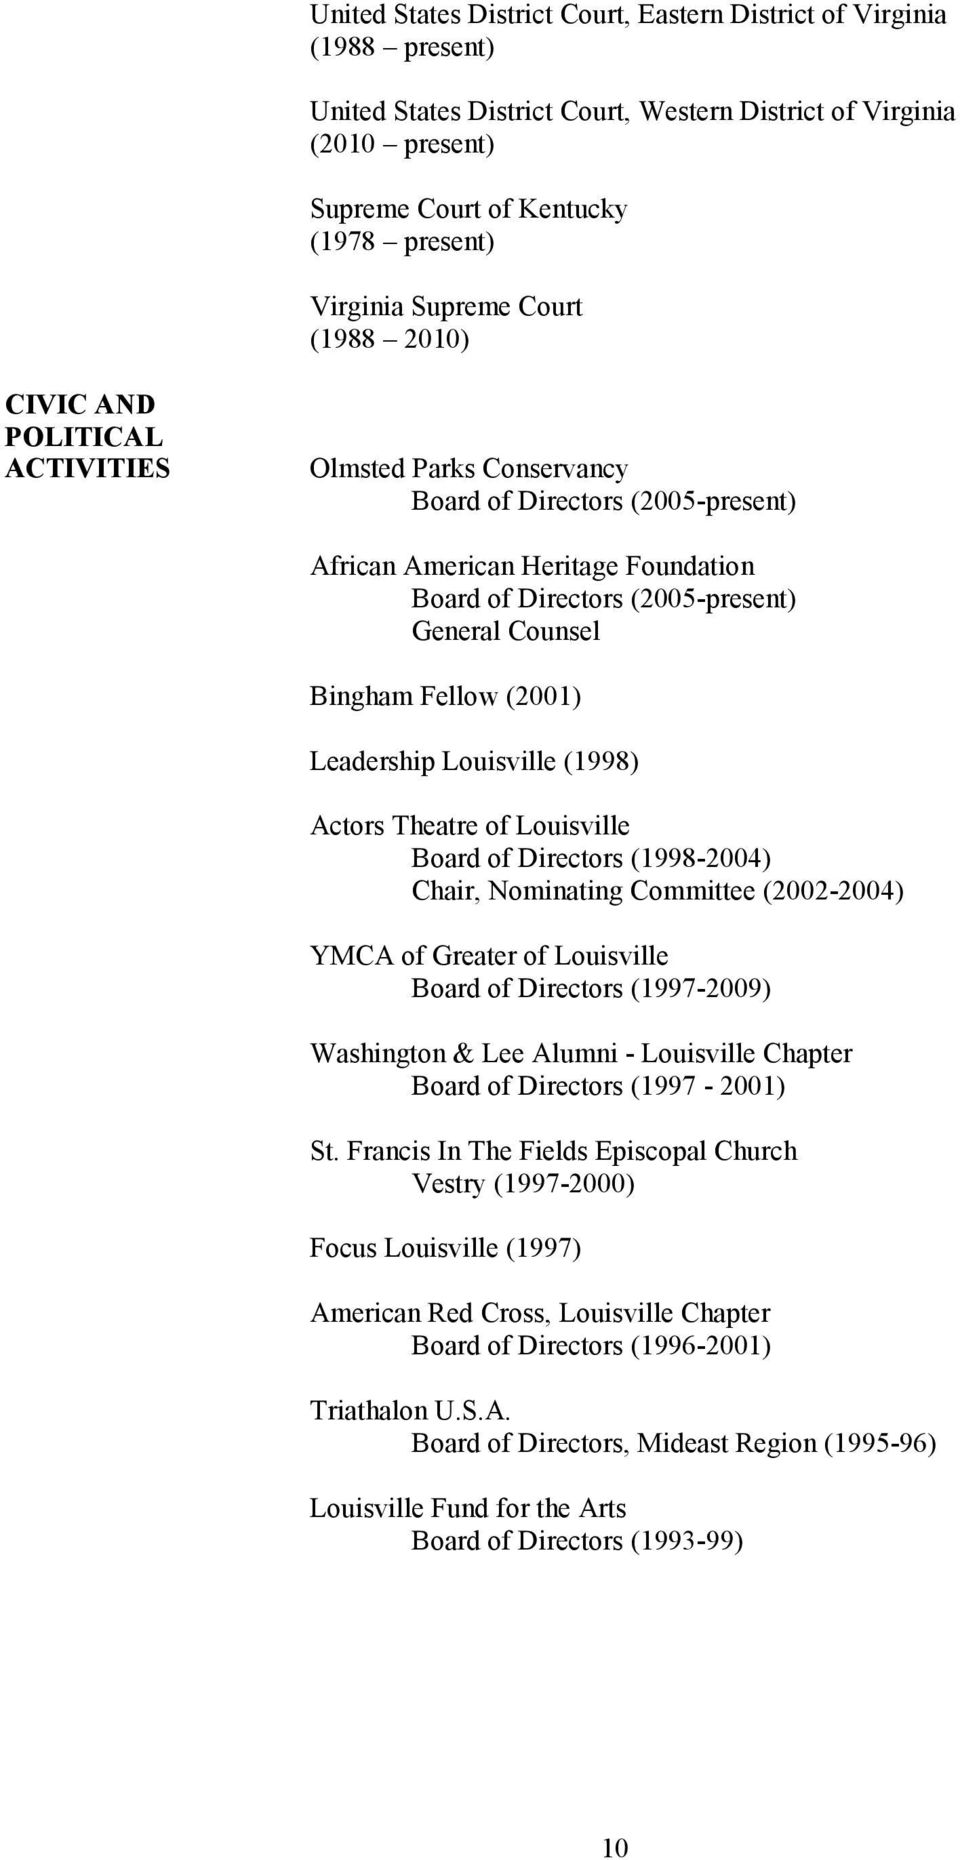 Counsel Bingham Fellow (2001) Leadership Louisville (1998) Actors Theatre of Louisville Board of Directors (1998-2004) Chair, Nominating Committee (2002-2004) YMCA of Greater of Louisville Board of